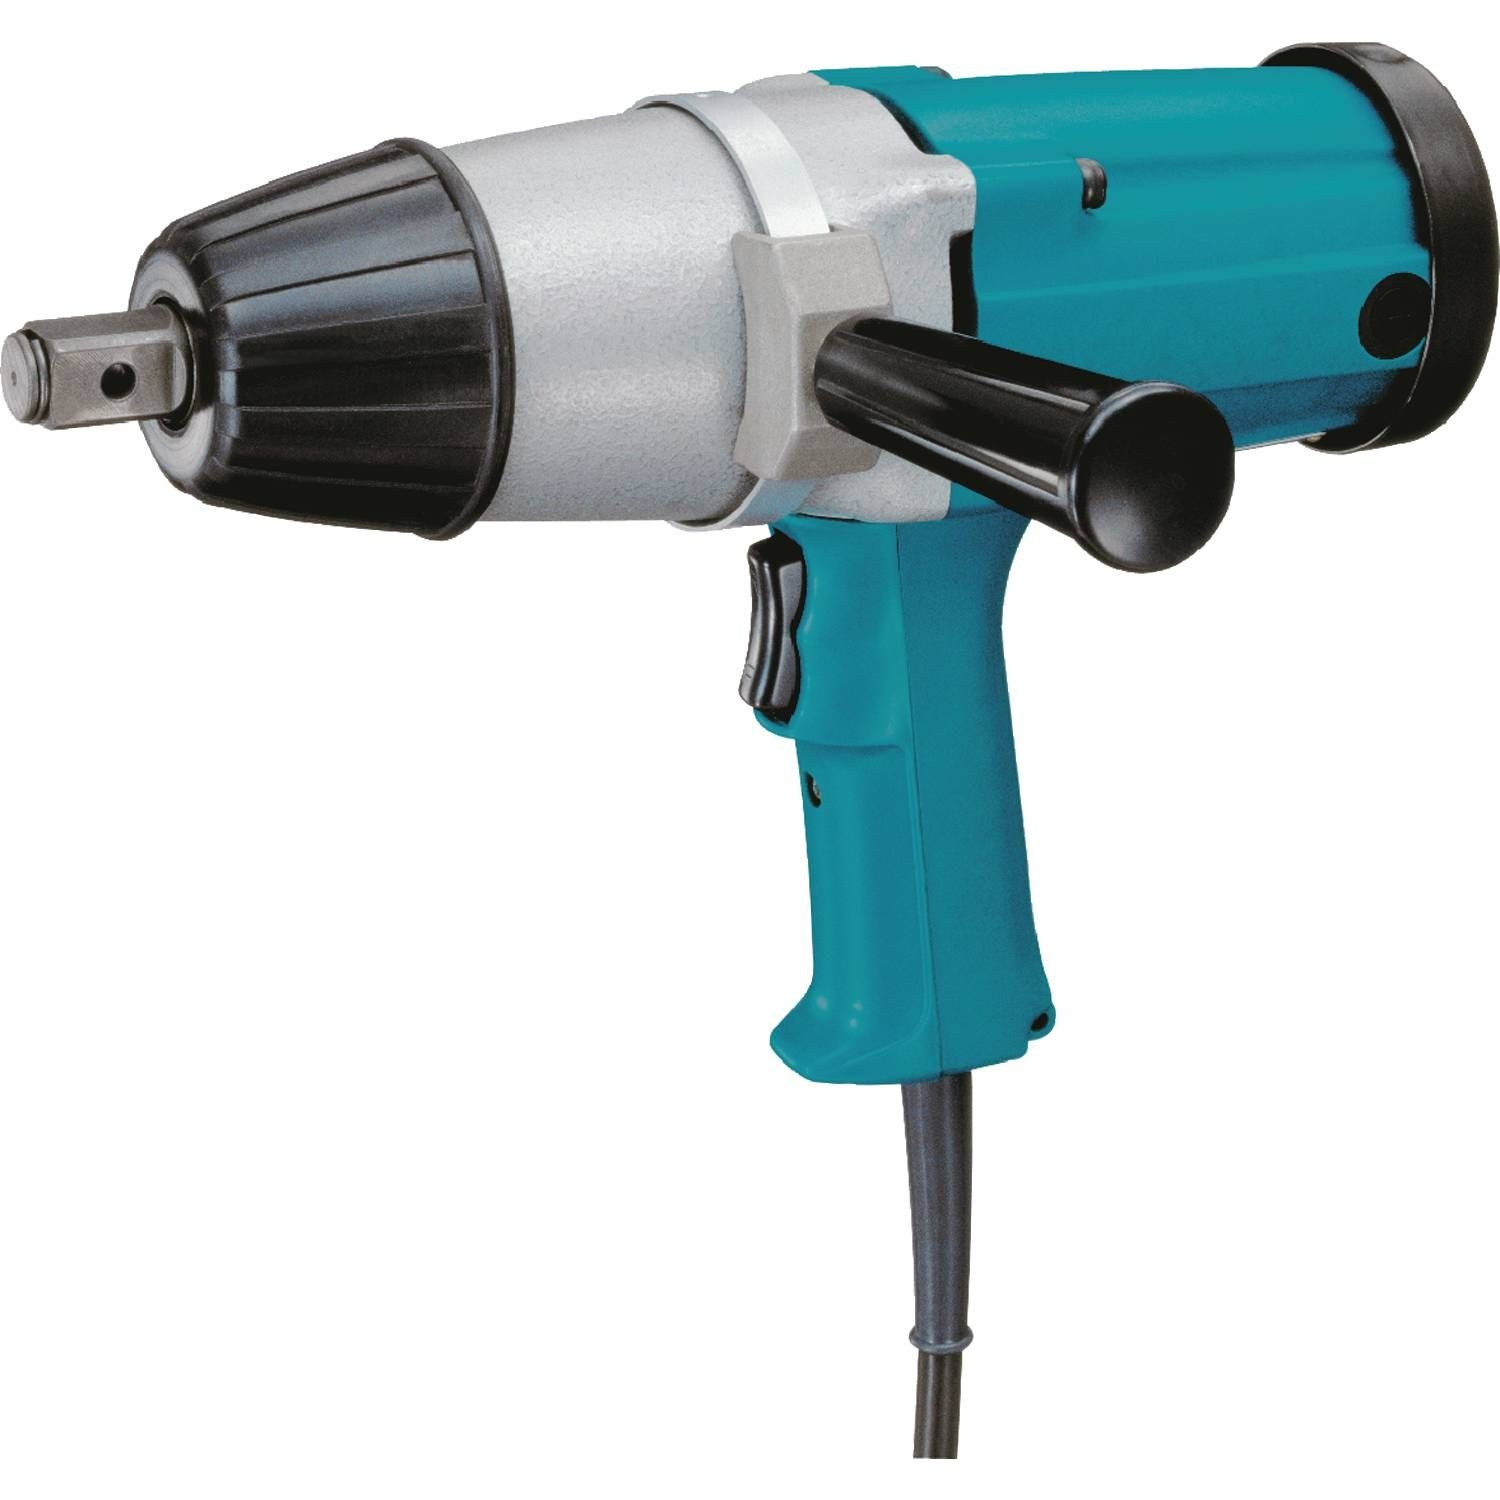 Makita 6906 9 Amp 3/4-Inch Impact Wrench